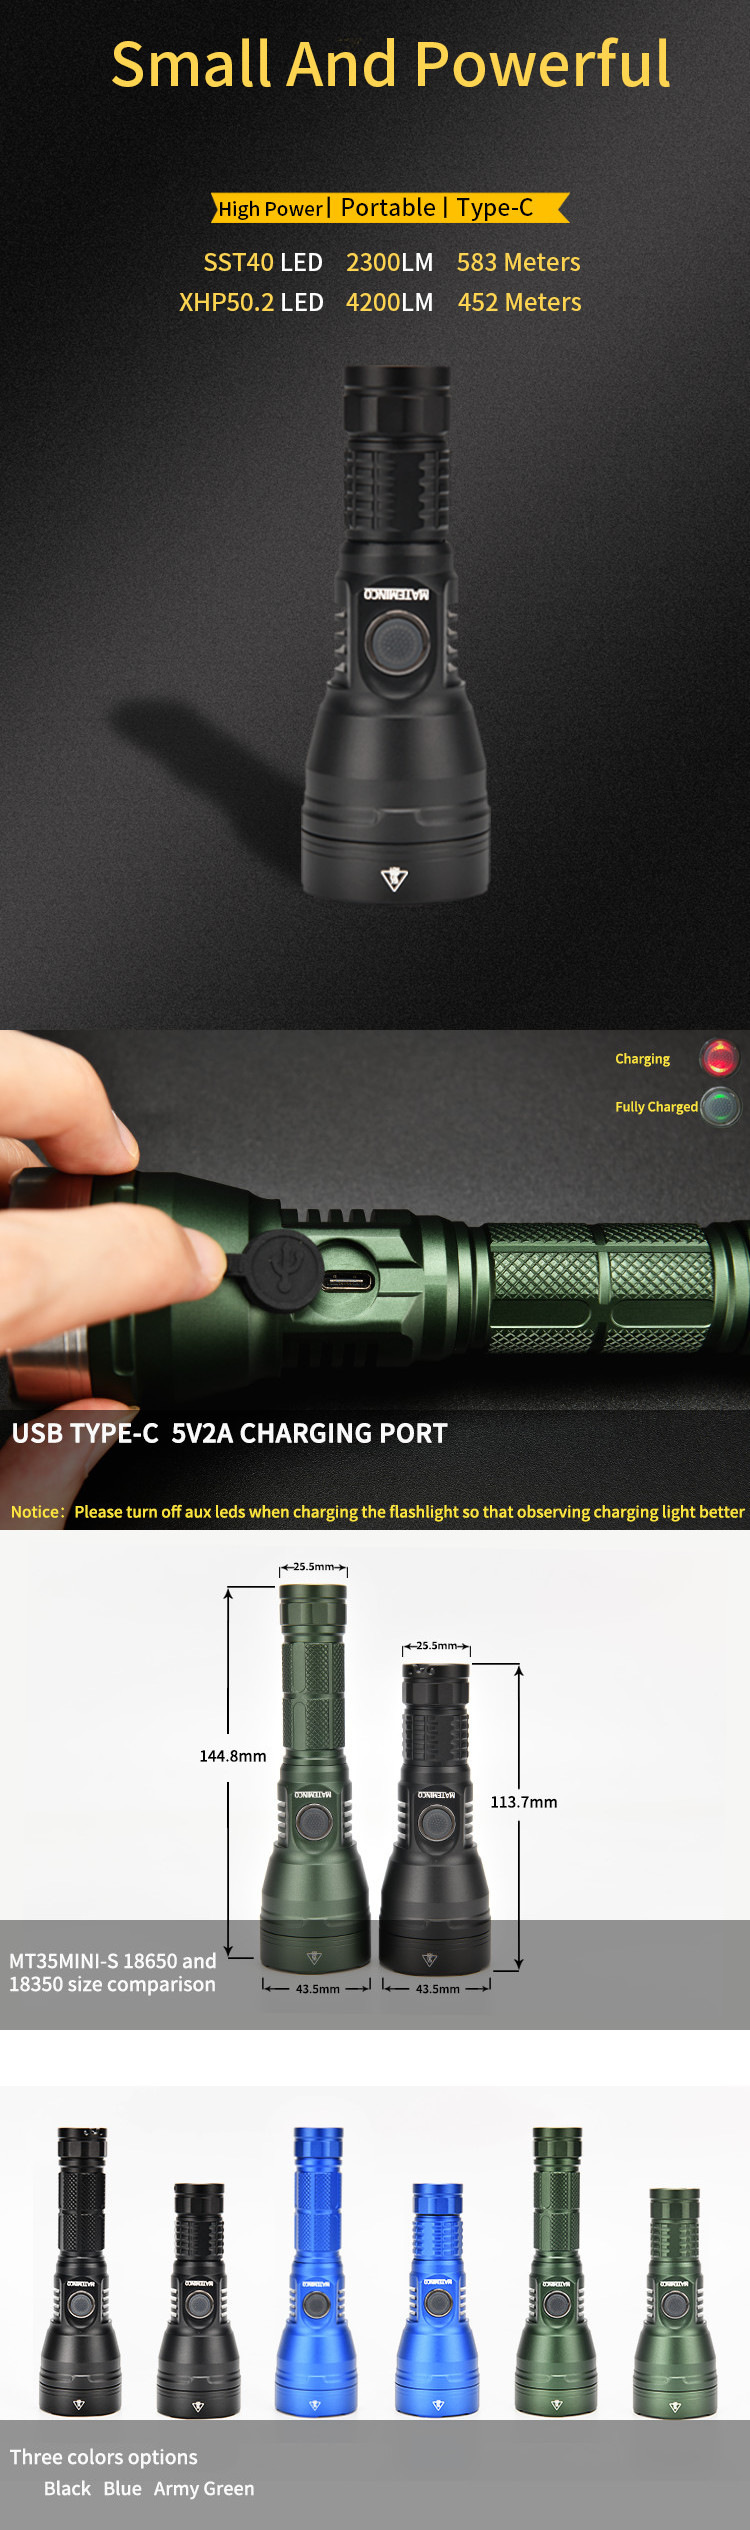 Mateminco MT35mini-S Cree XHP50.2 4200lm SST-40 USB Type-C Rechargeable Long Range Led Flashlight for Camping, Hunting